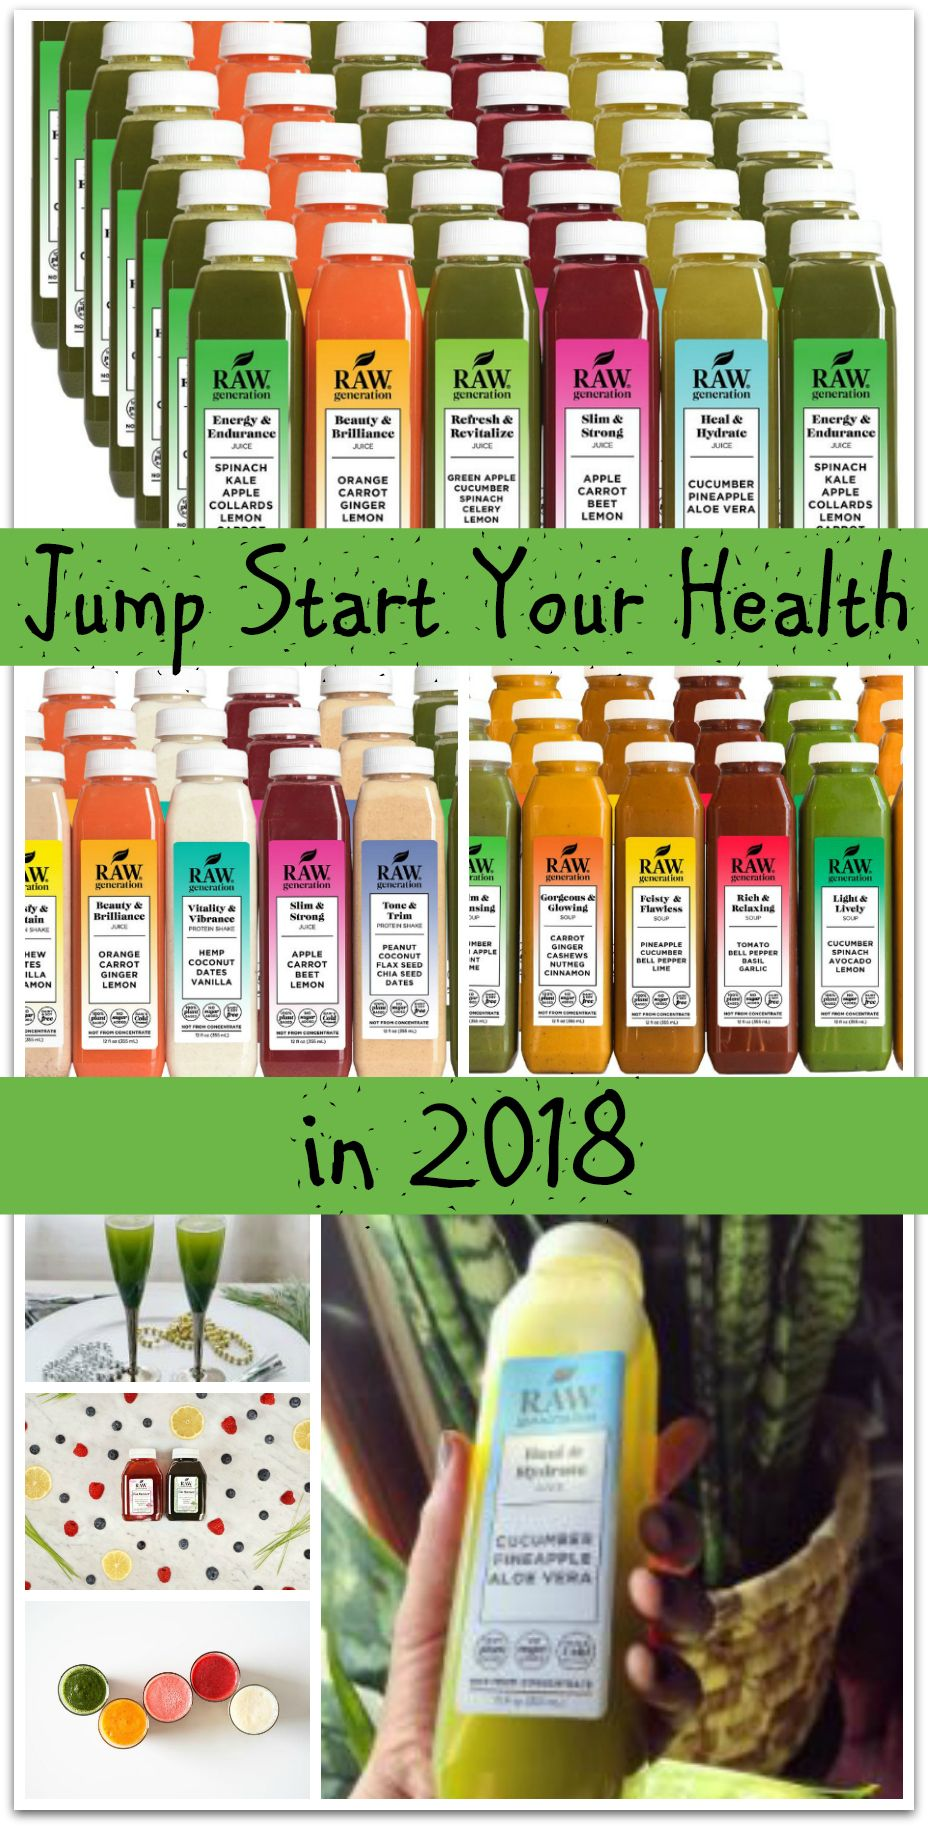 I love to do a good juice or soup cleanse a few times a year to i love to do a good juice or soup cleanse a few times a year to malvernweather Image collections